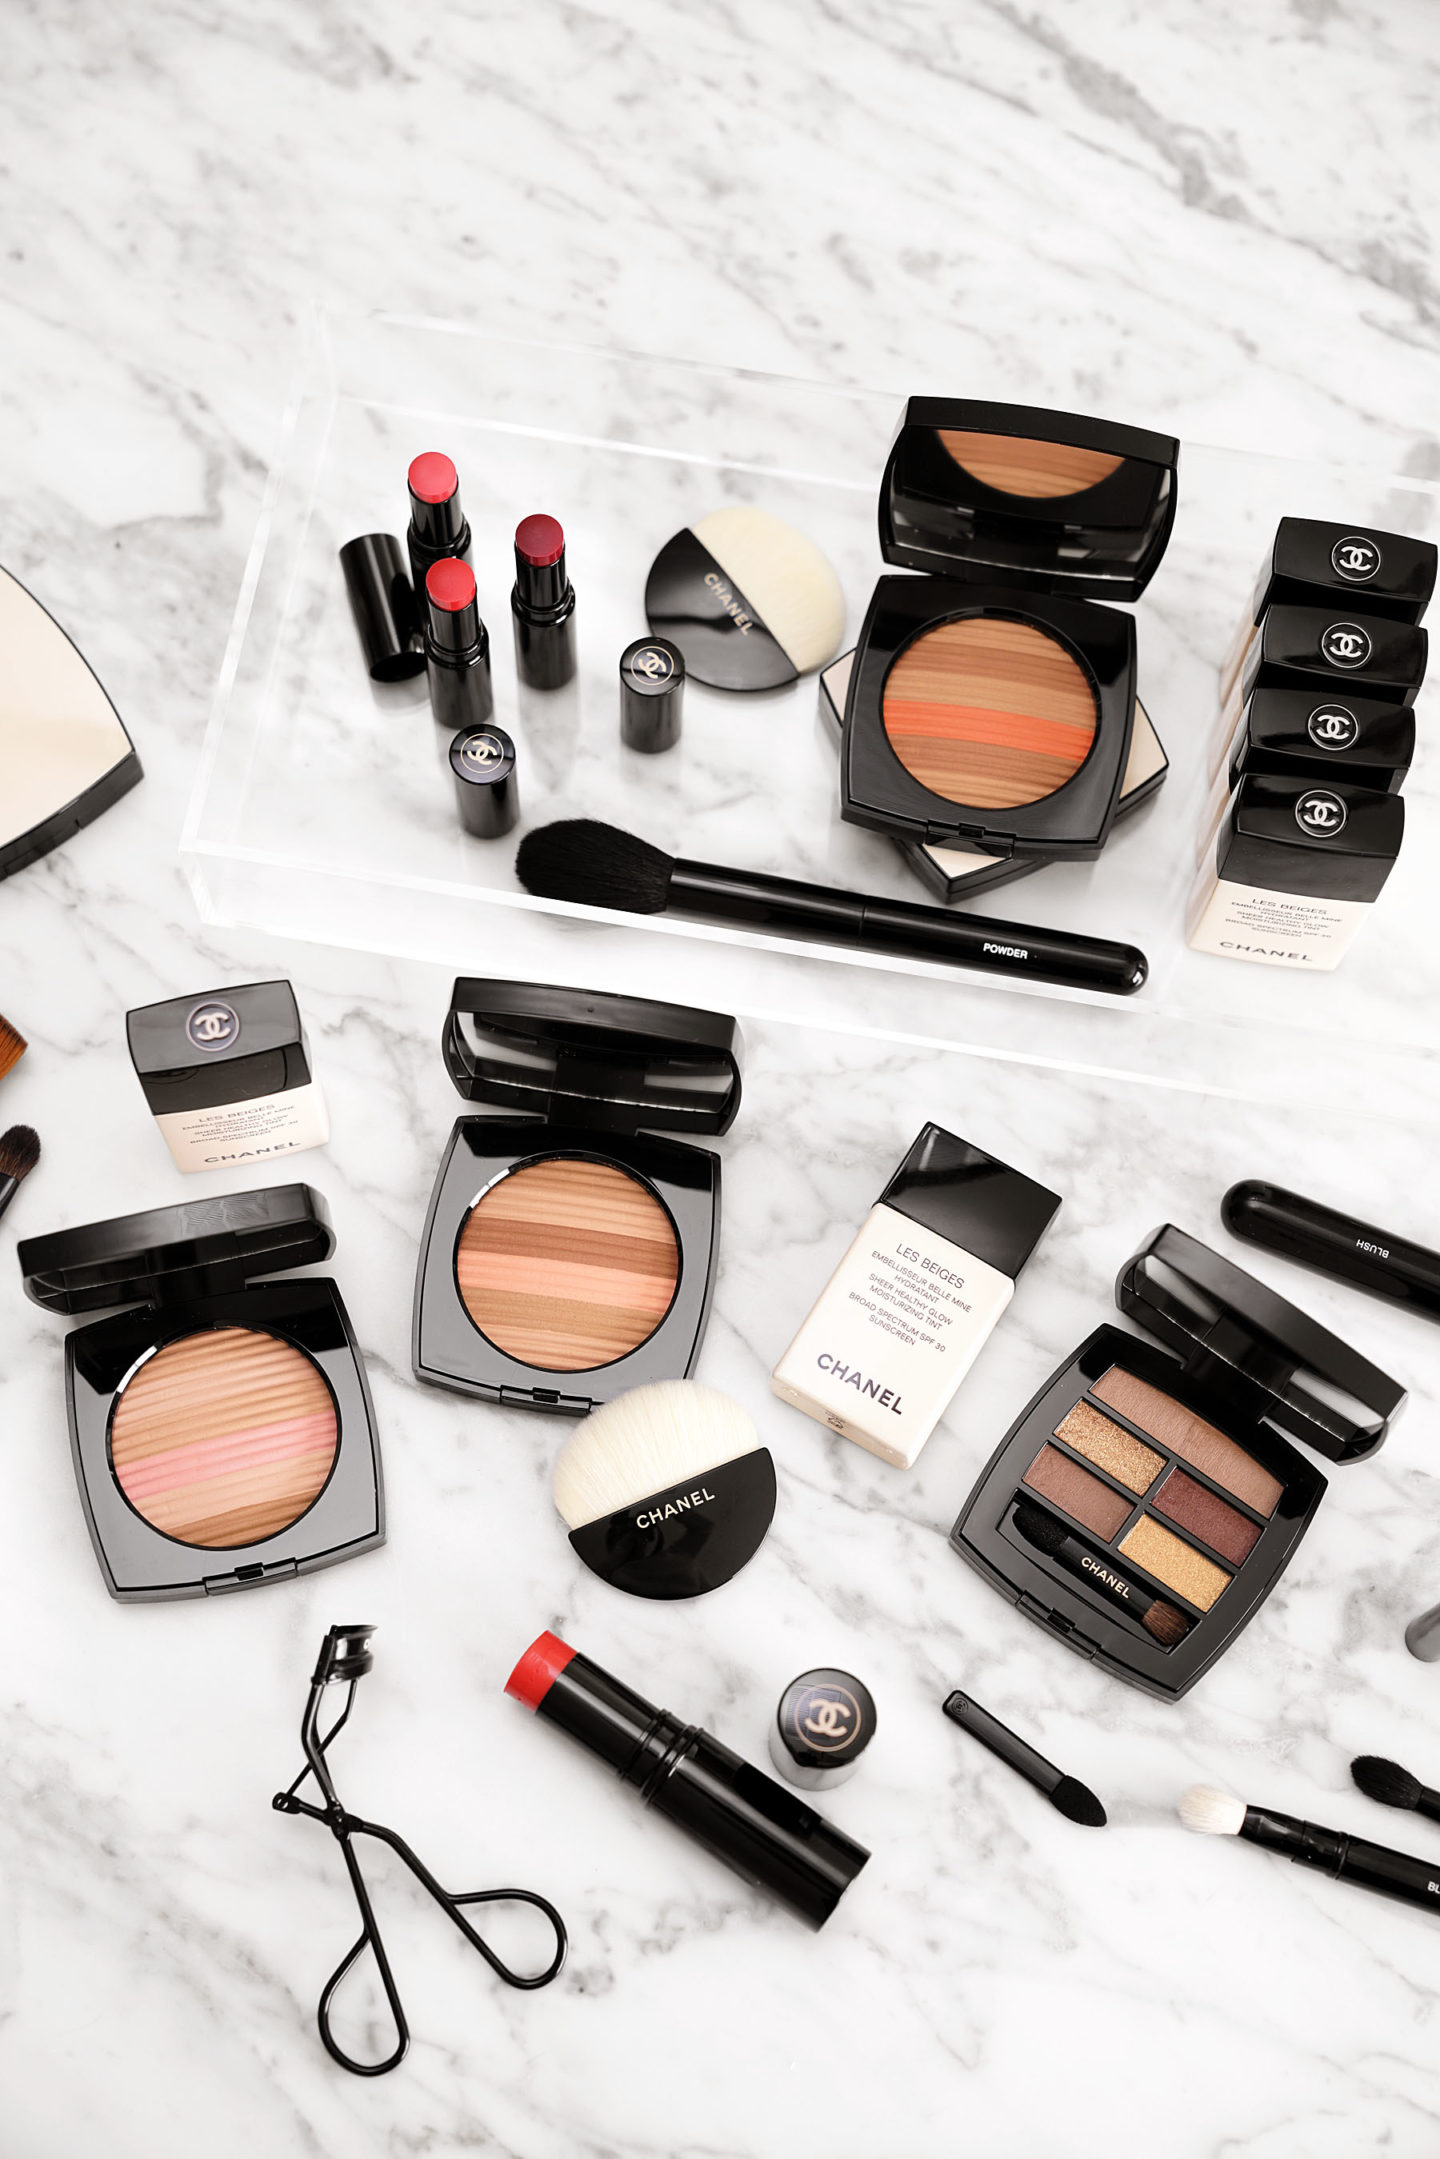 Chanel Les Beiges Collection Review 2018